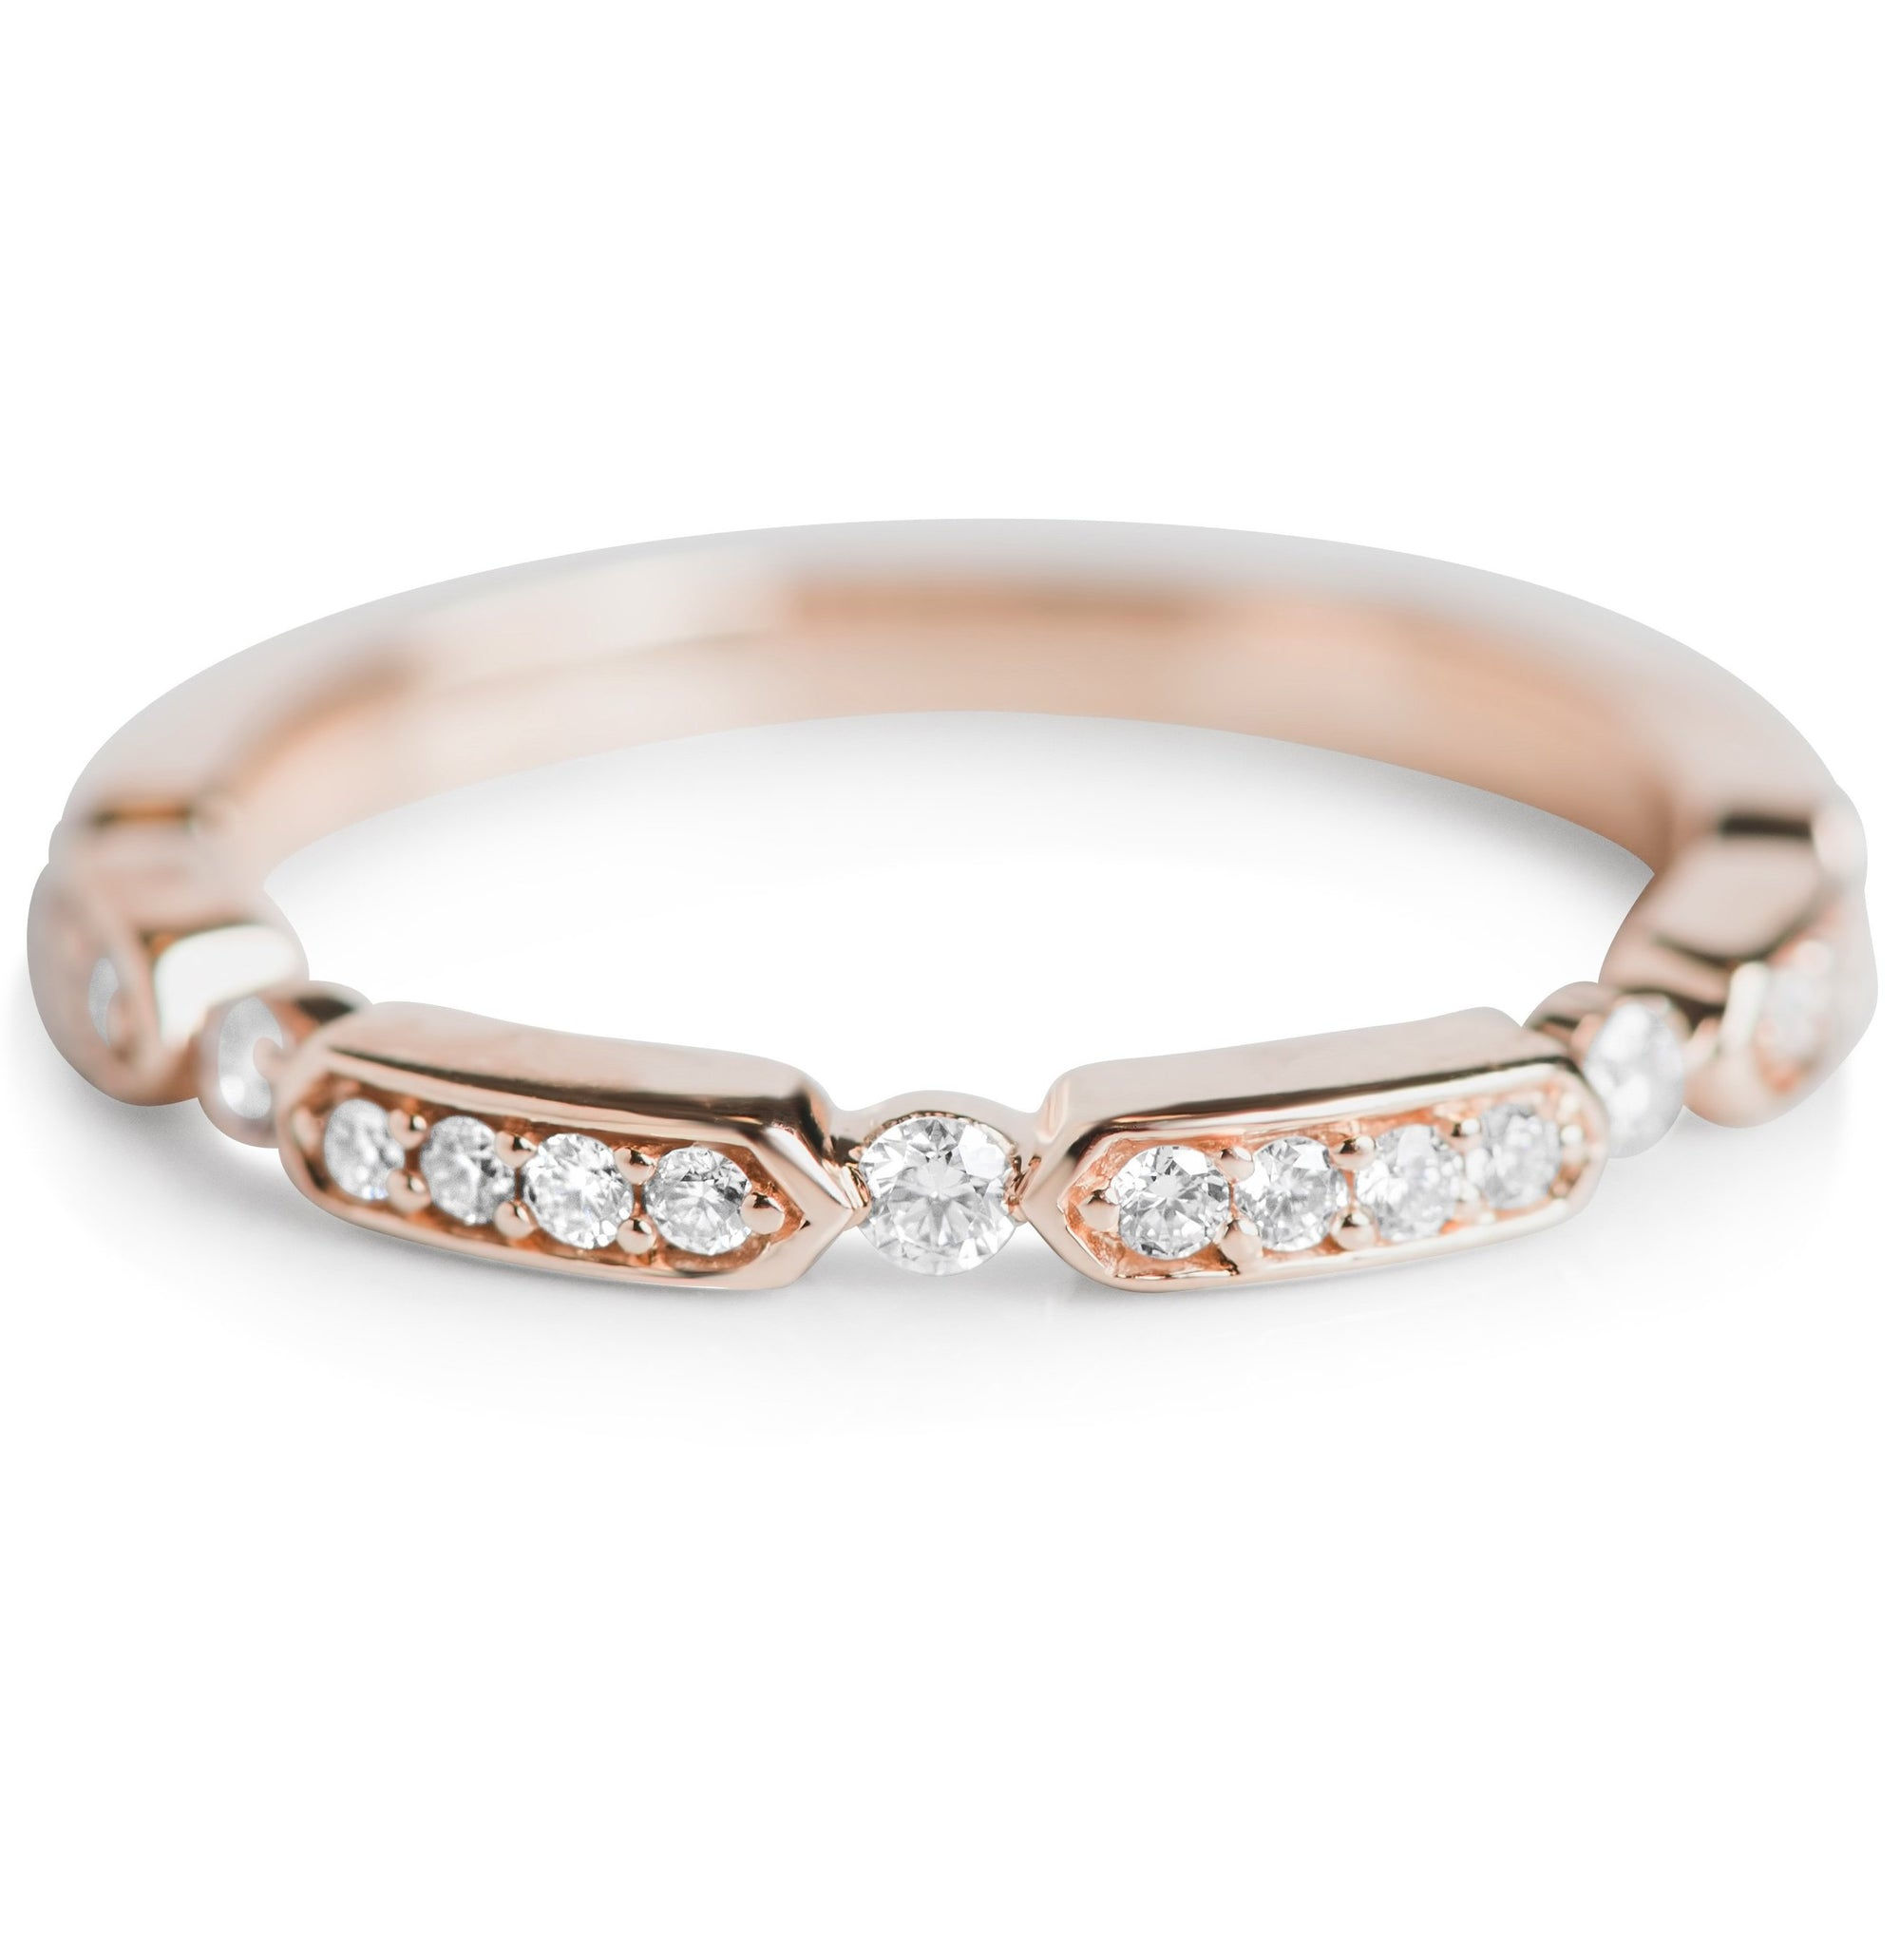 rose gold and white diamond stack ring or wedding band